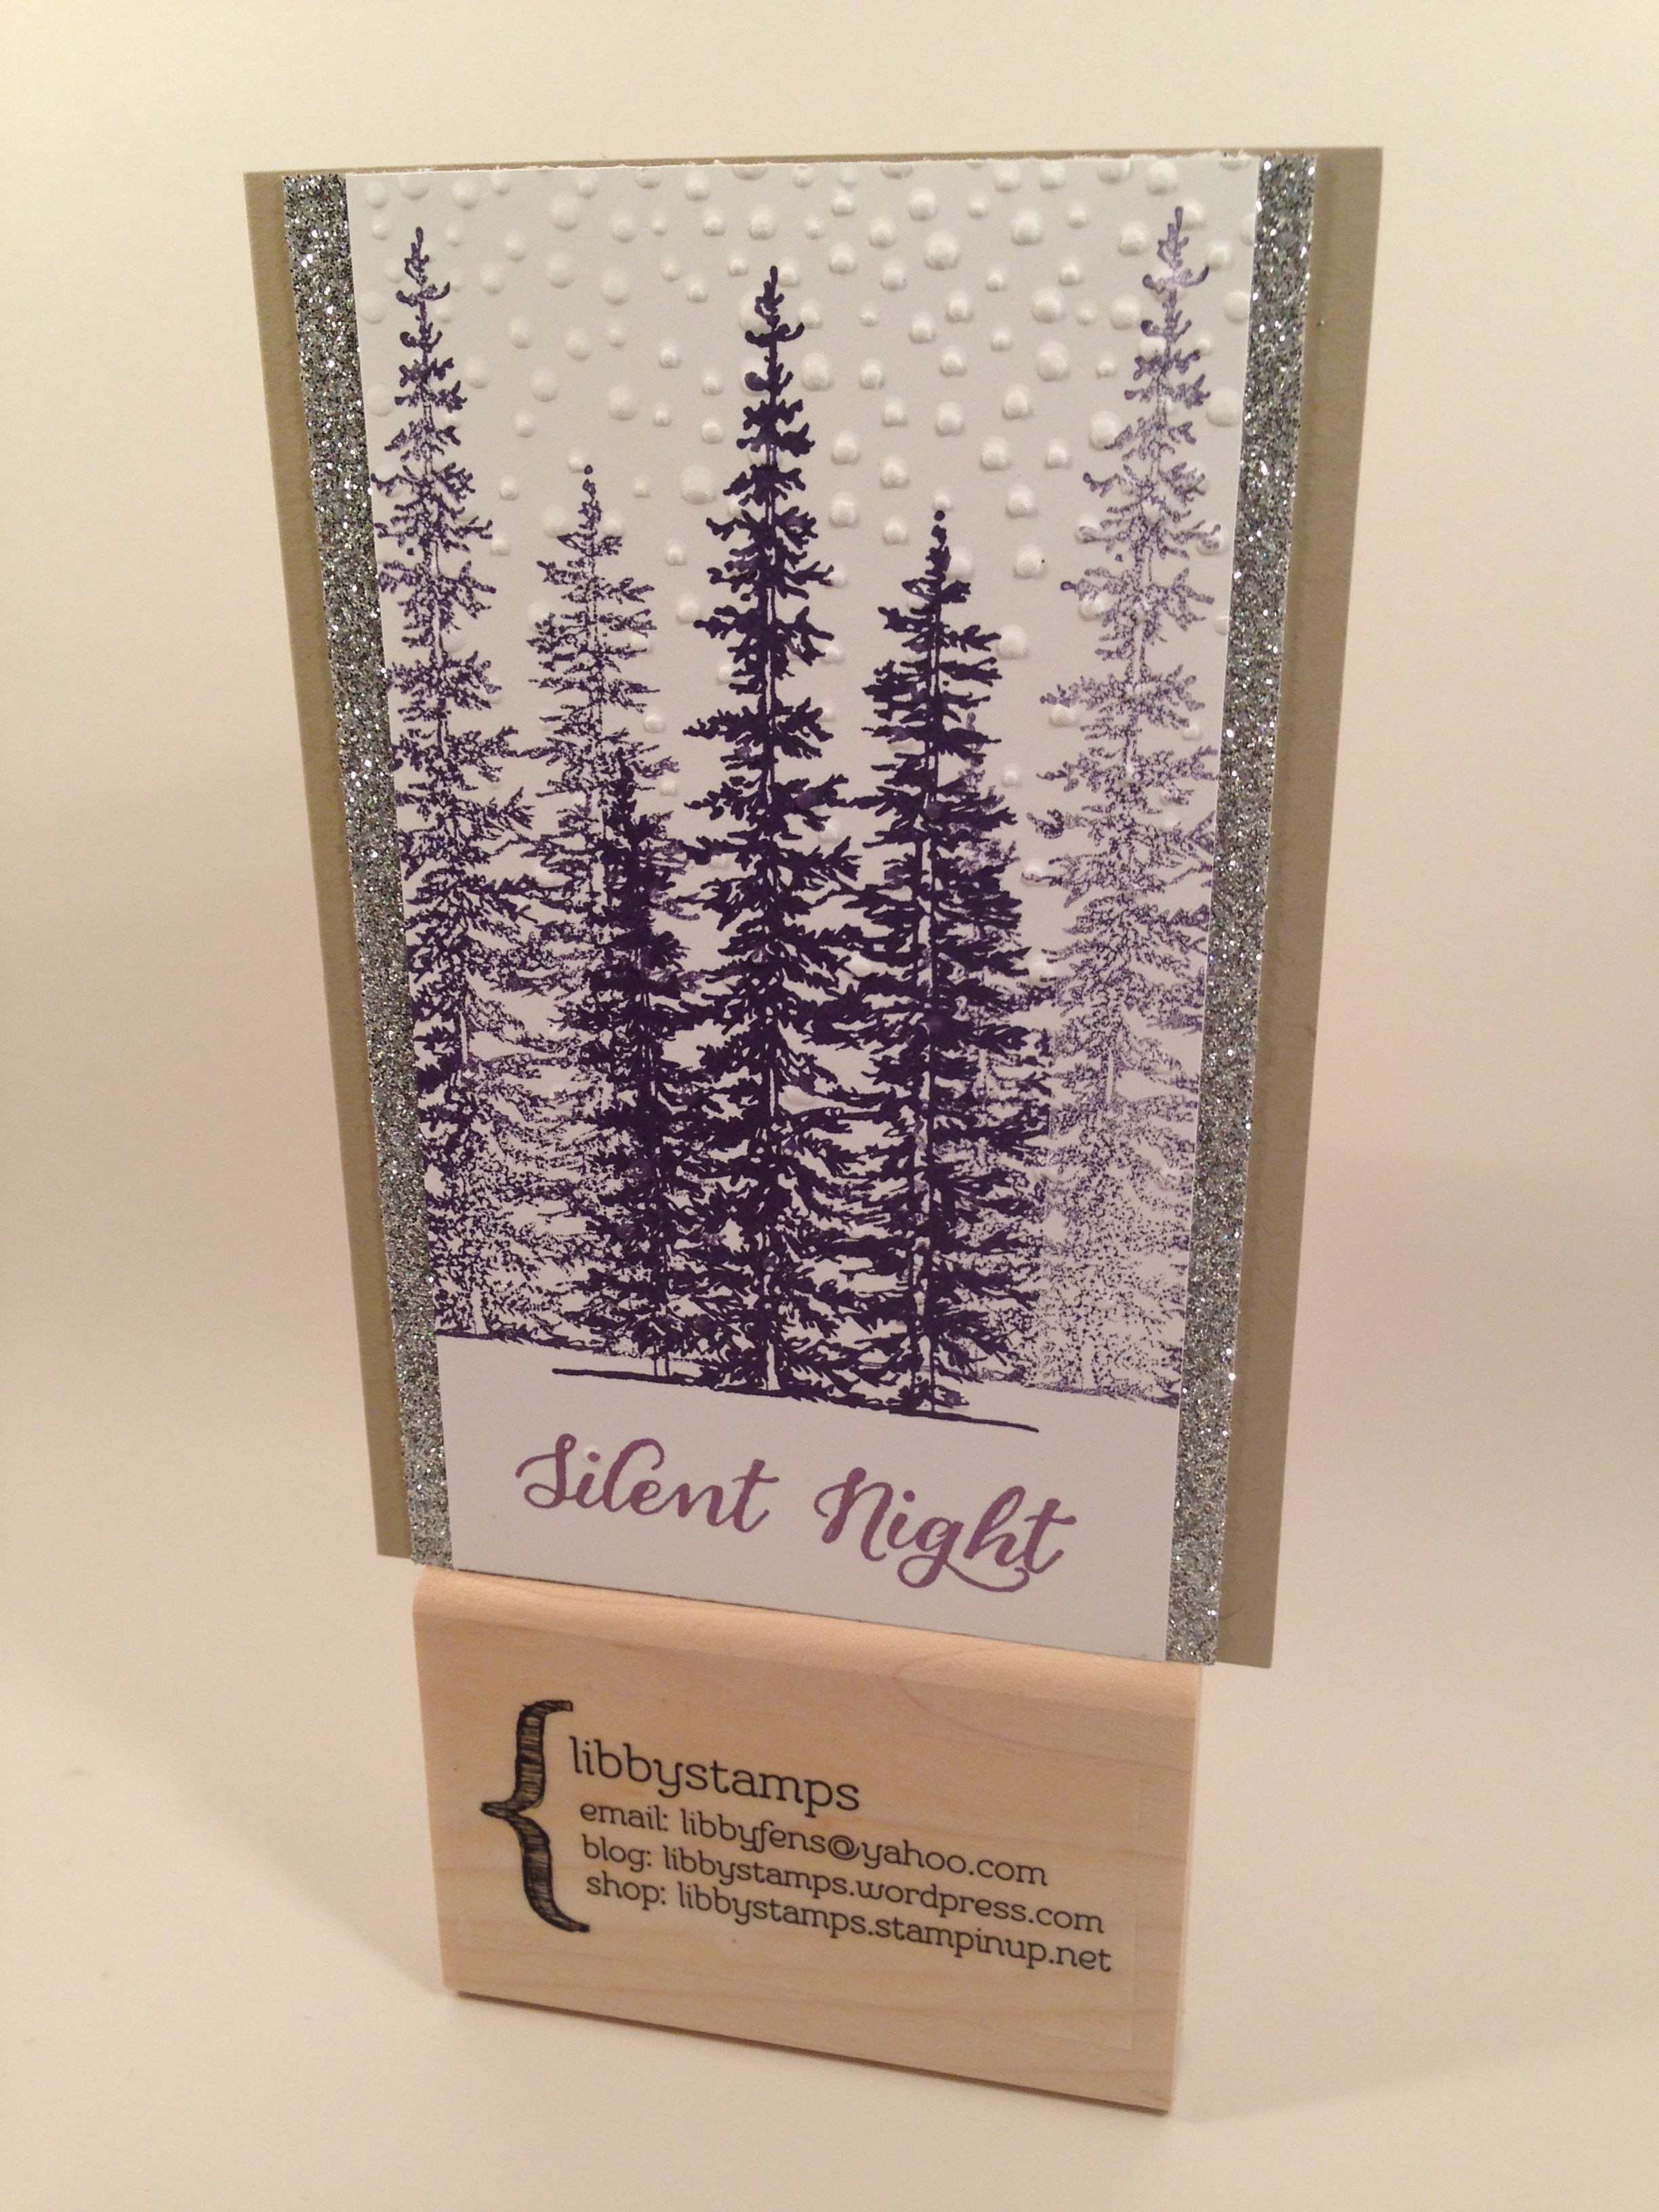 libbystamps, Stampin Up, Wonderland, Softly Falling Embossing Folder, Silver Glimmer Paper, Christmas Card